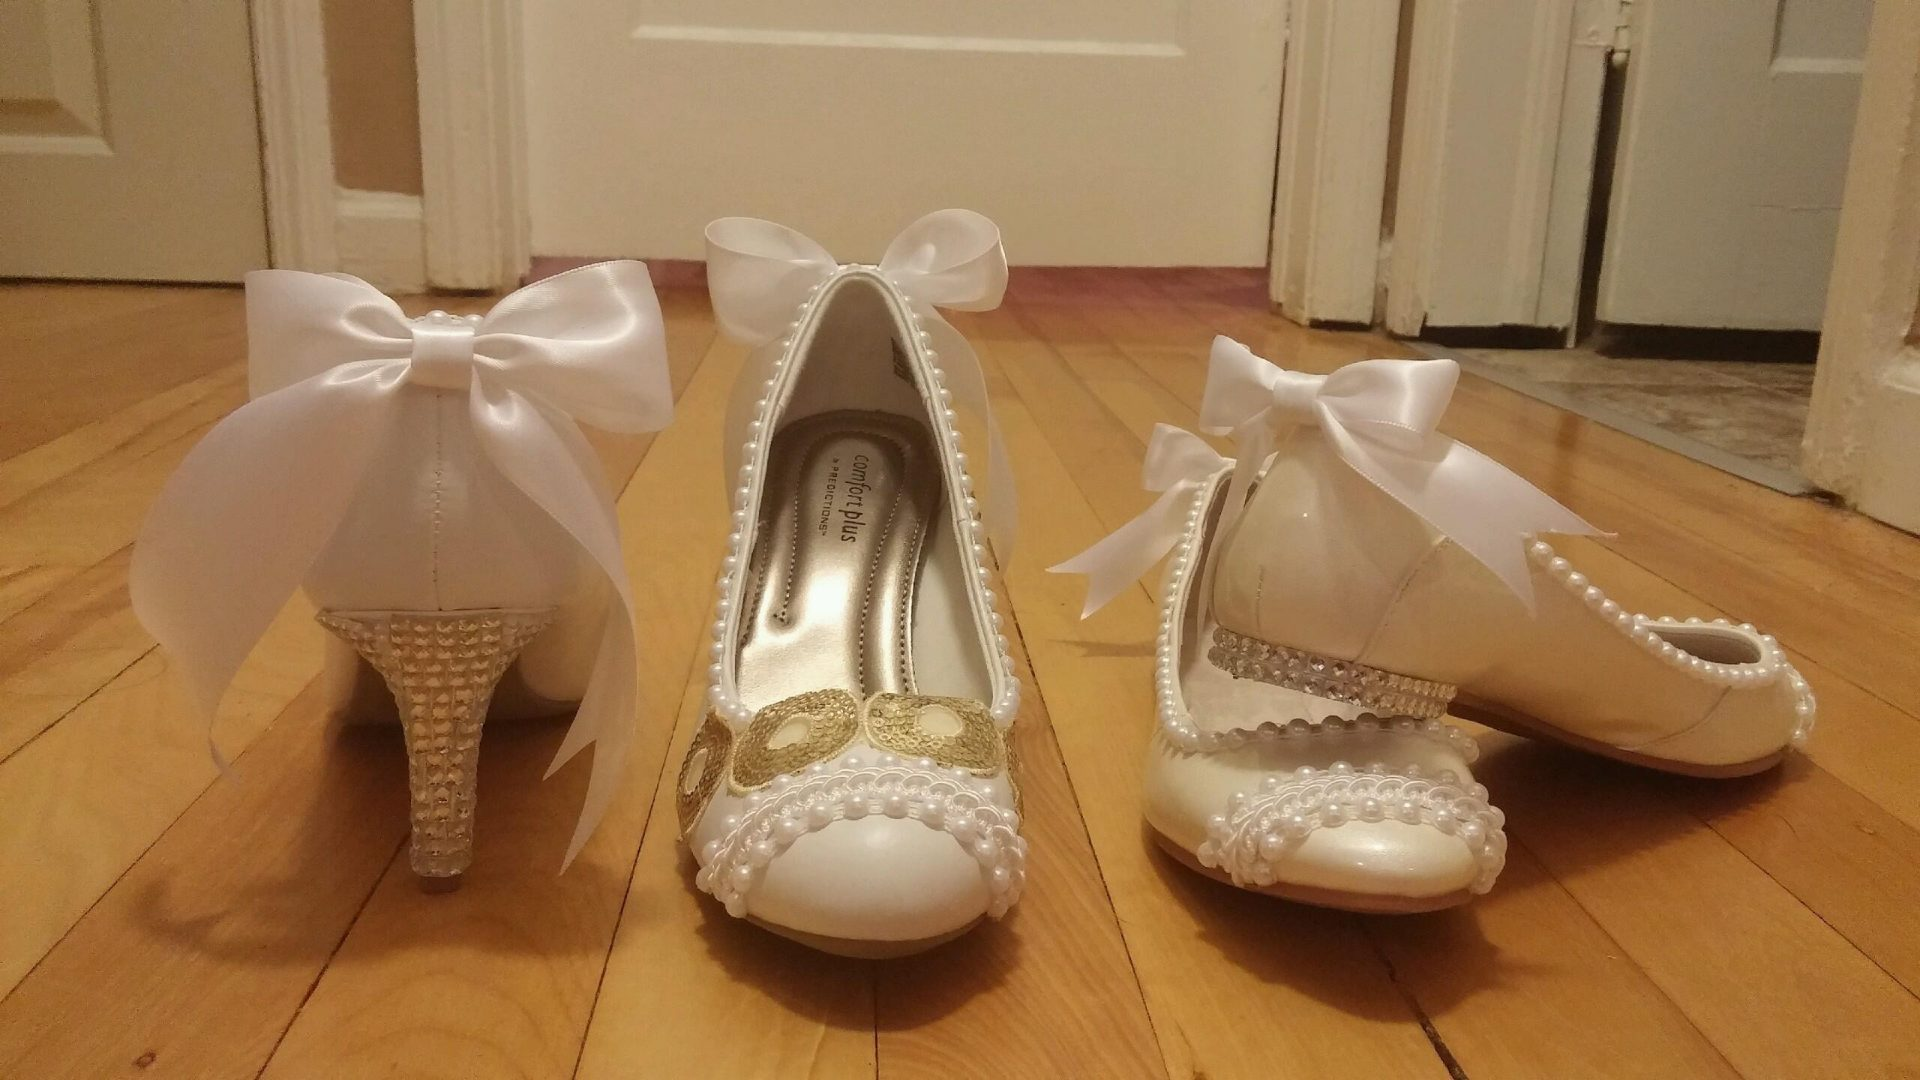 two sets of white shoes one with heels and another flats with pearls and white bows